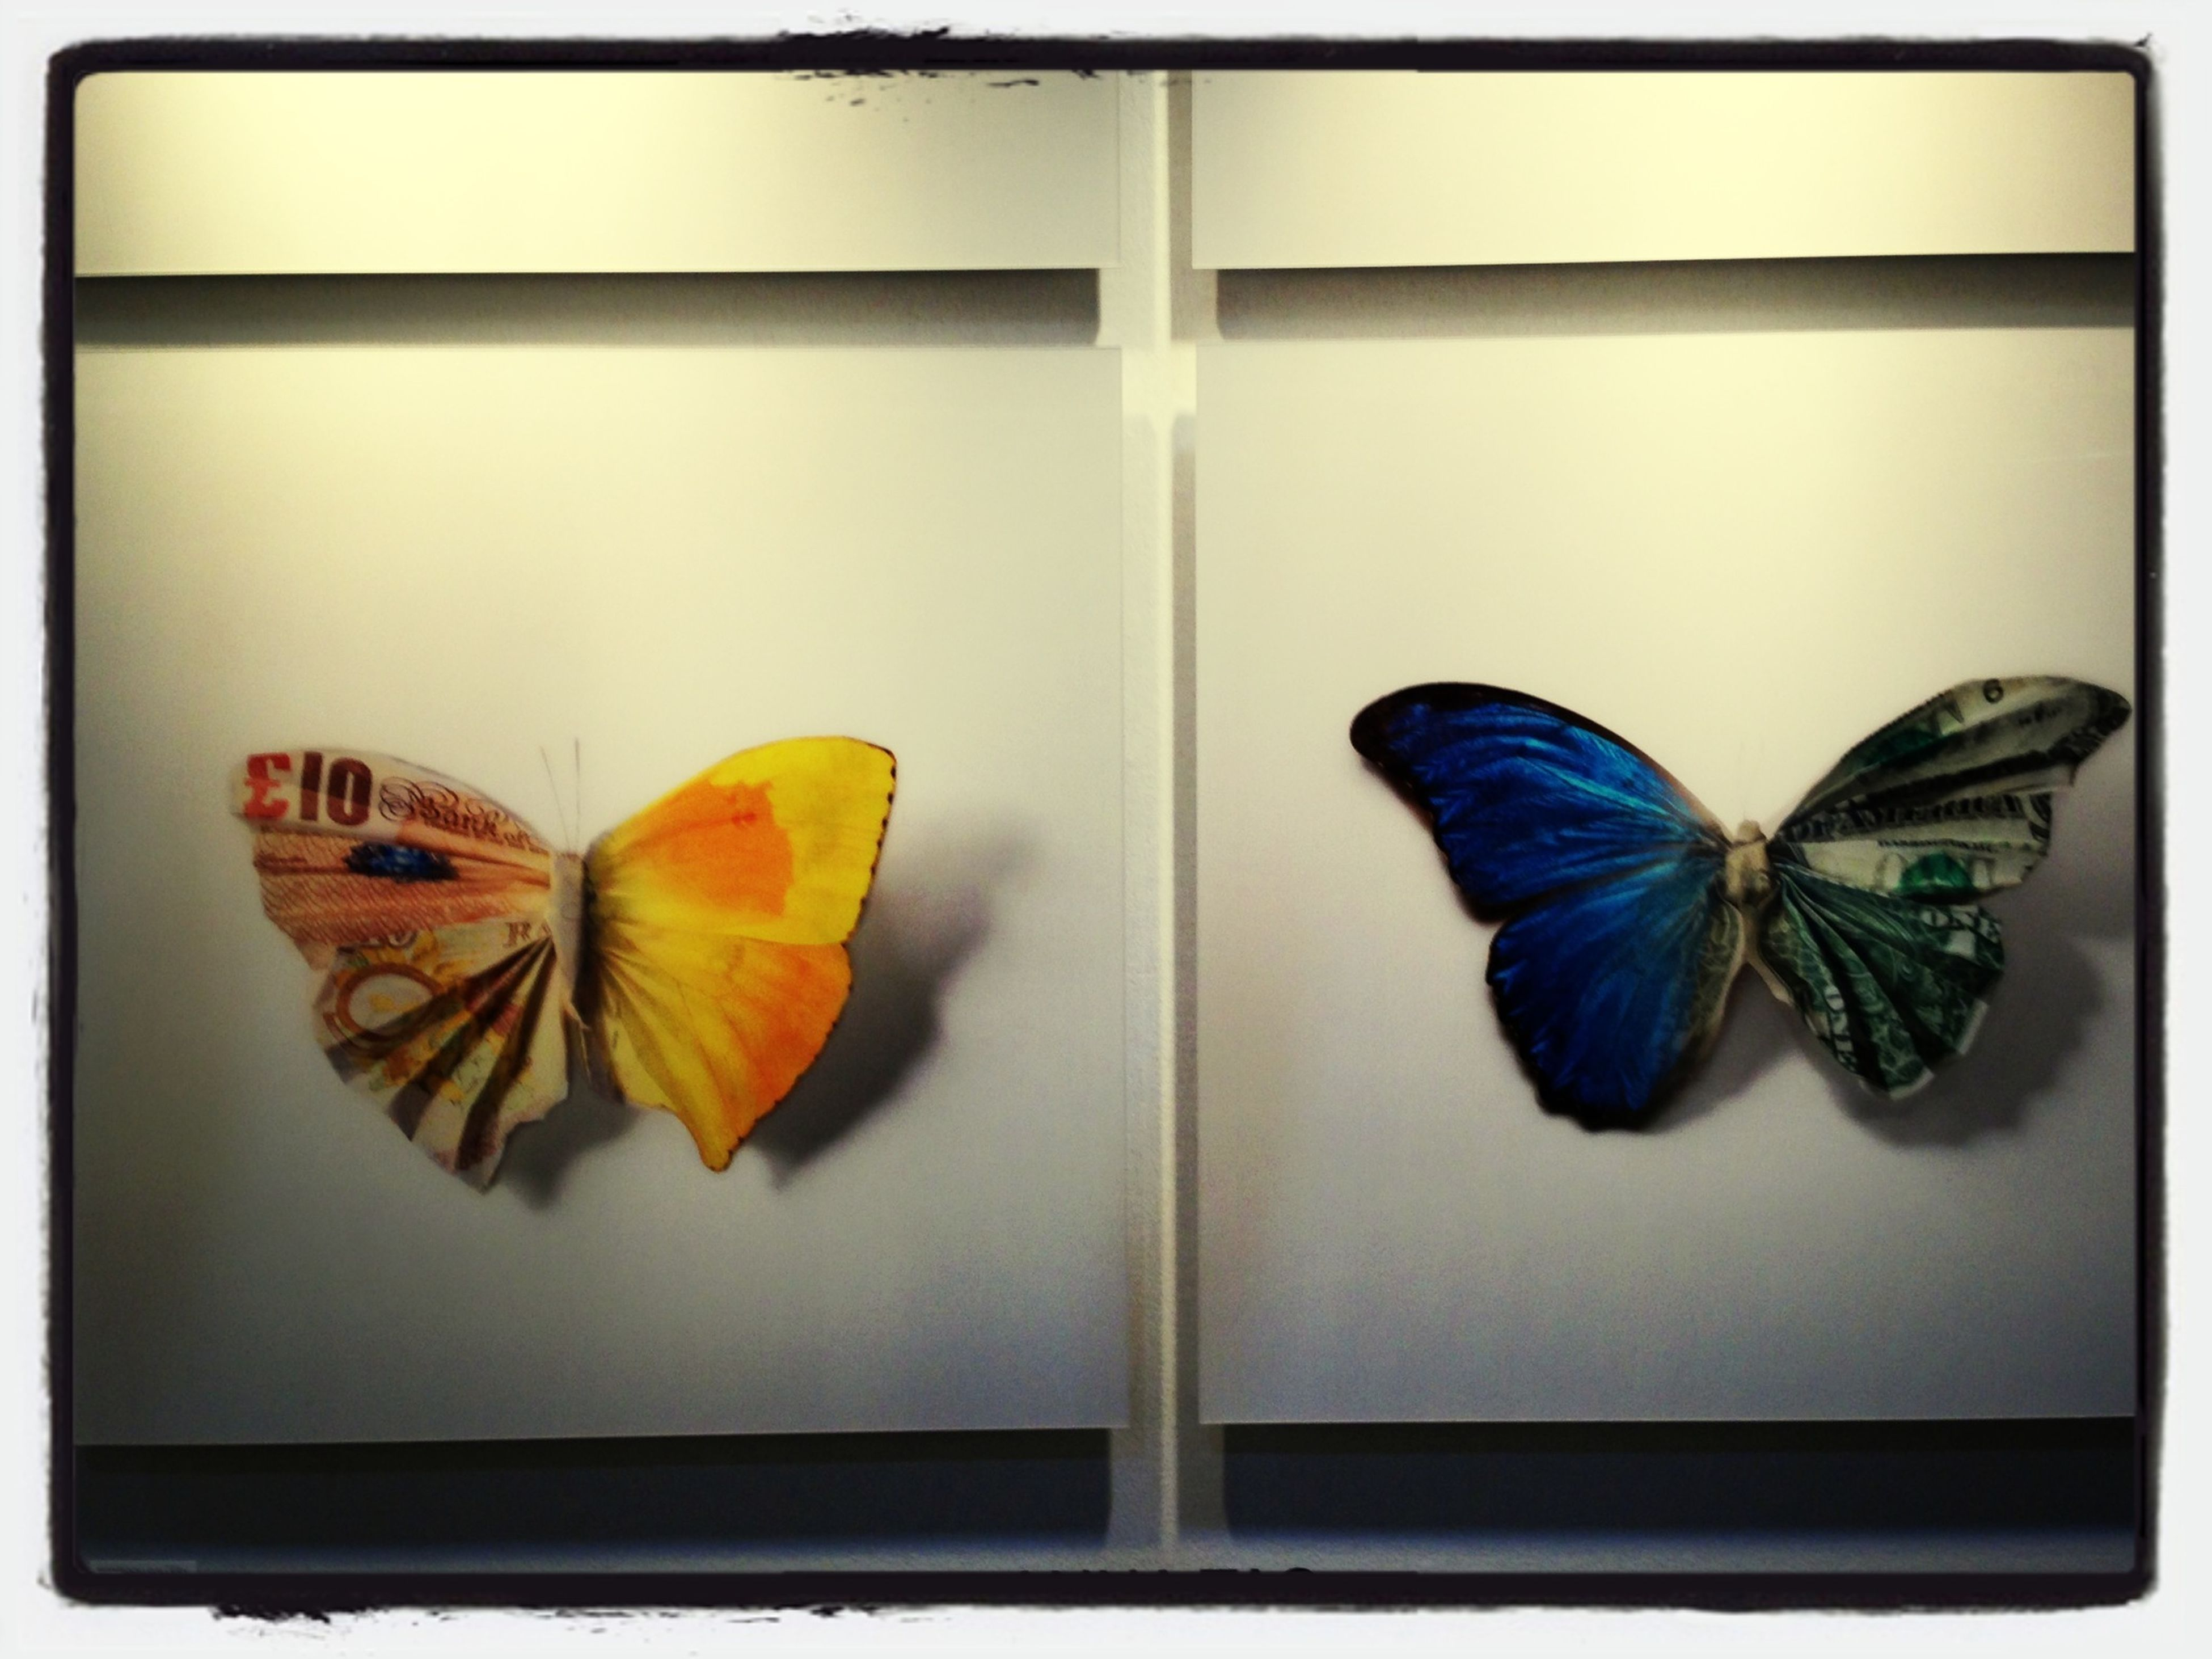 indoors, insect, close-up, wildlife, animal themes, auto post production filter, transfer print, multi colored, no people, butterfly - insect, still life, butterfly, leaf, animals in the wild, wall - building feature, pattern, variation, day, one animal, art and craft